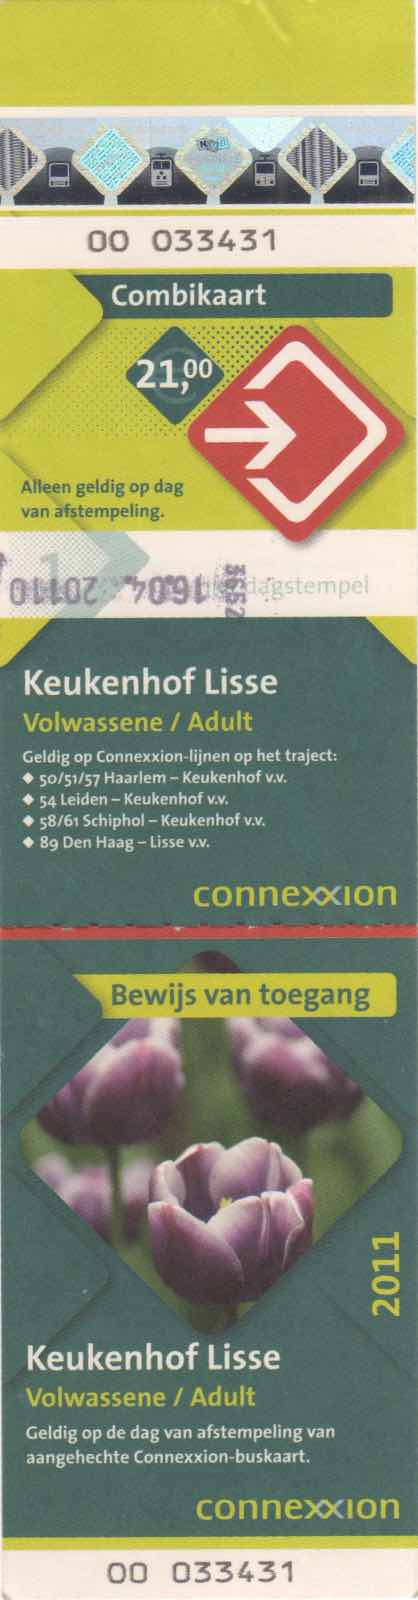 ticket for Connexxion bus and entrance to Keukenhof (2011)